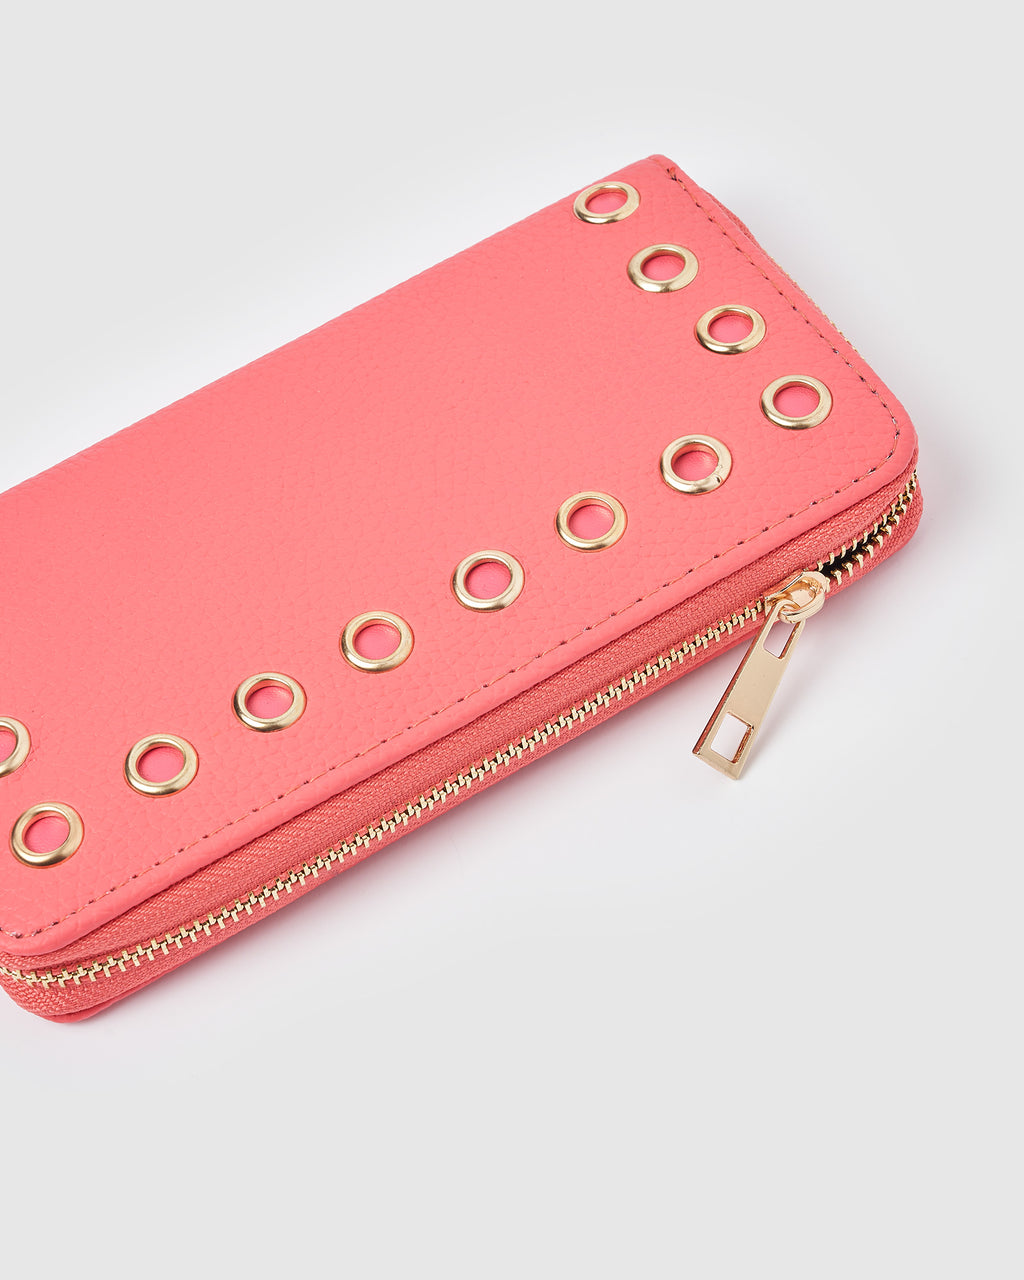 Izoa Bailee Wallet Hot Pink